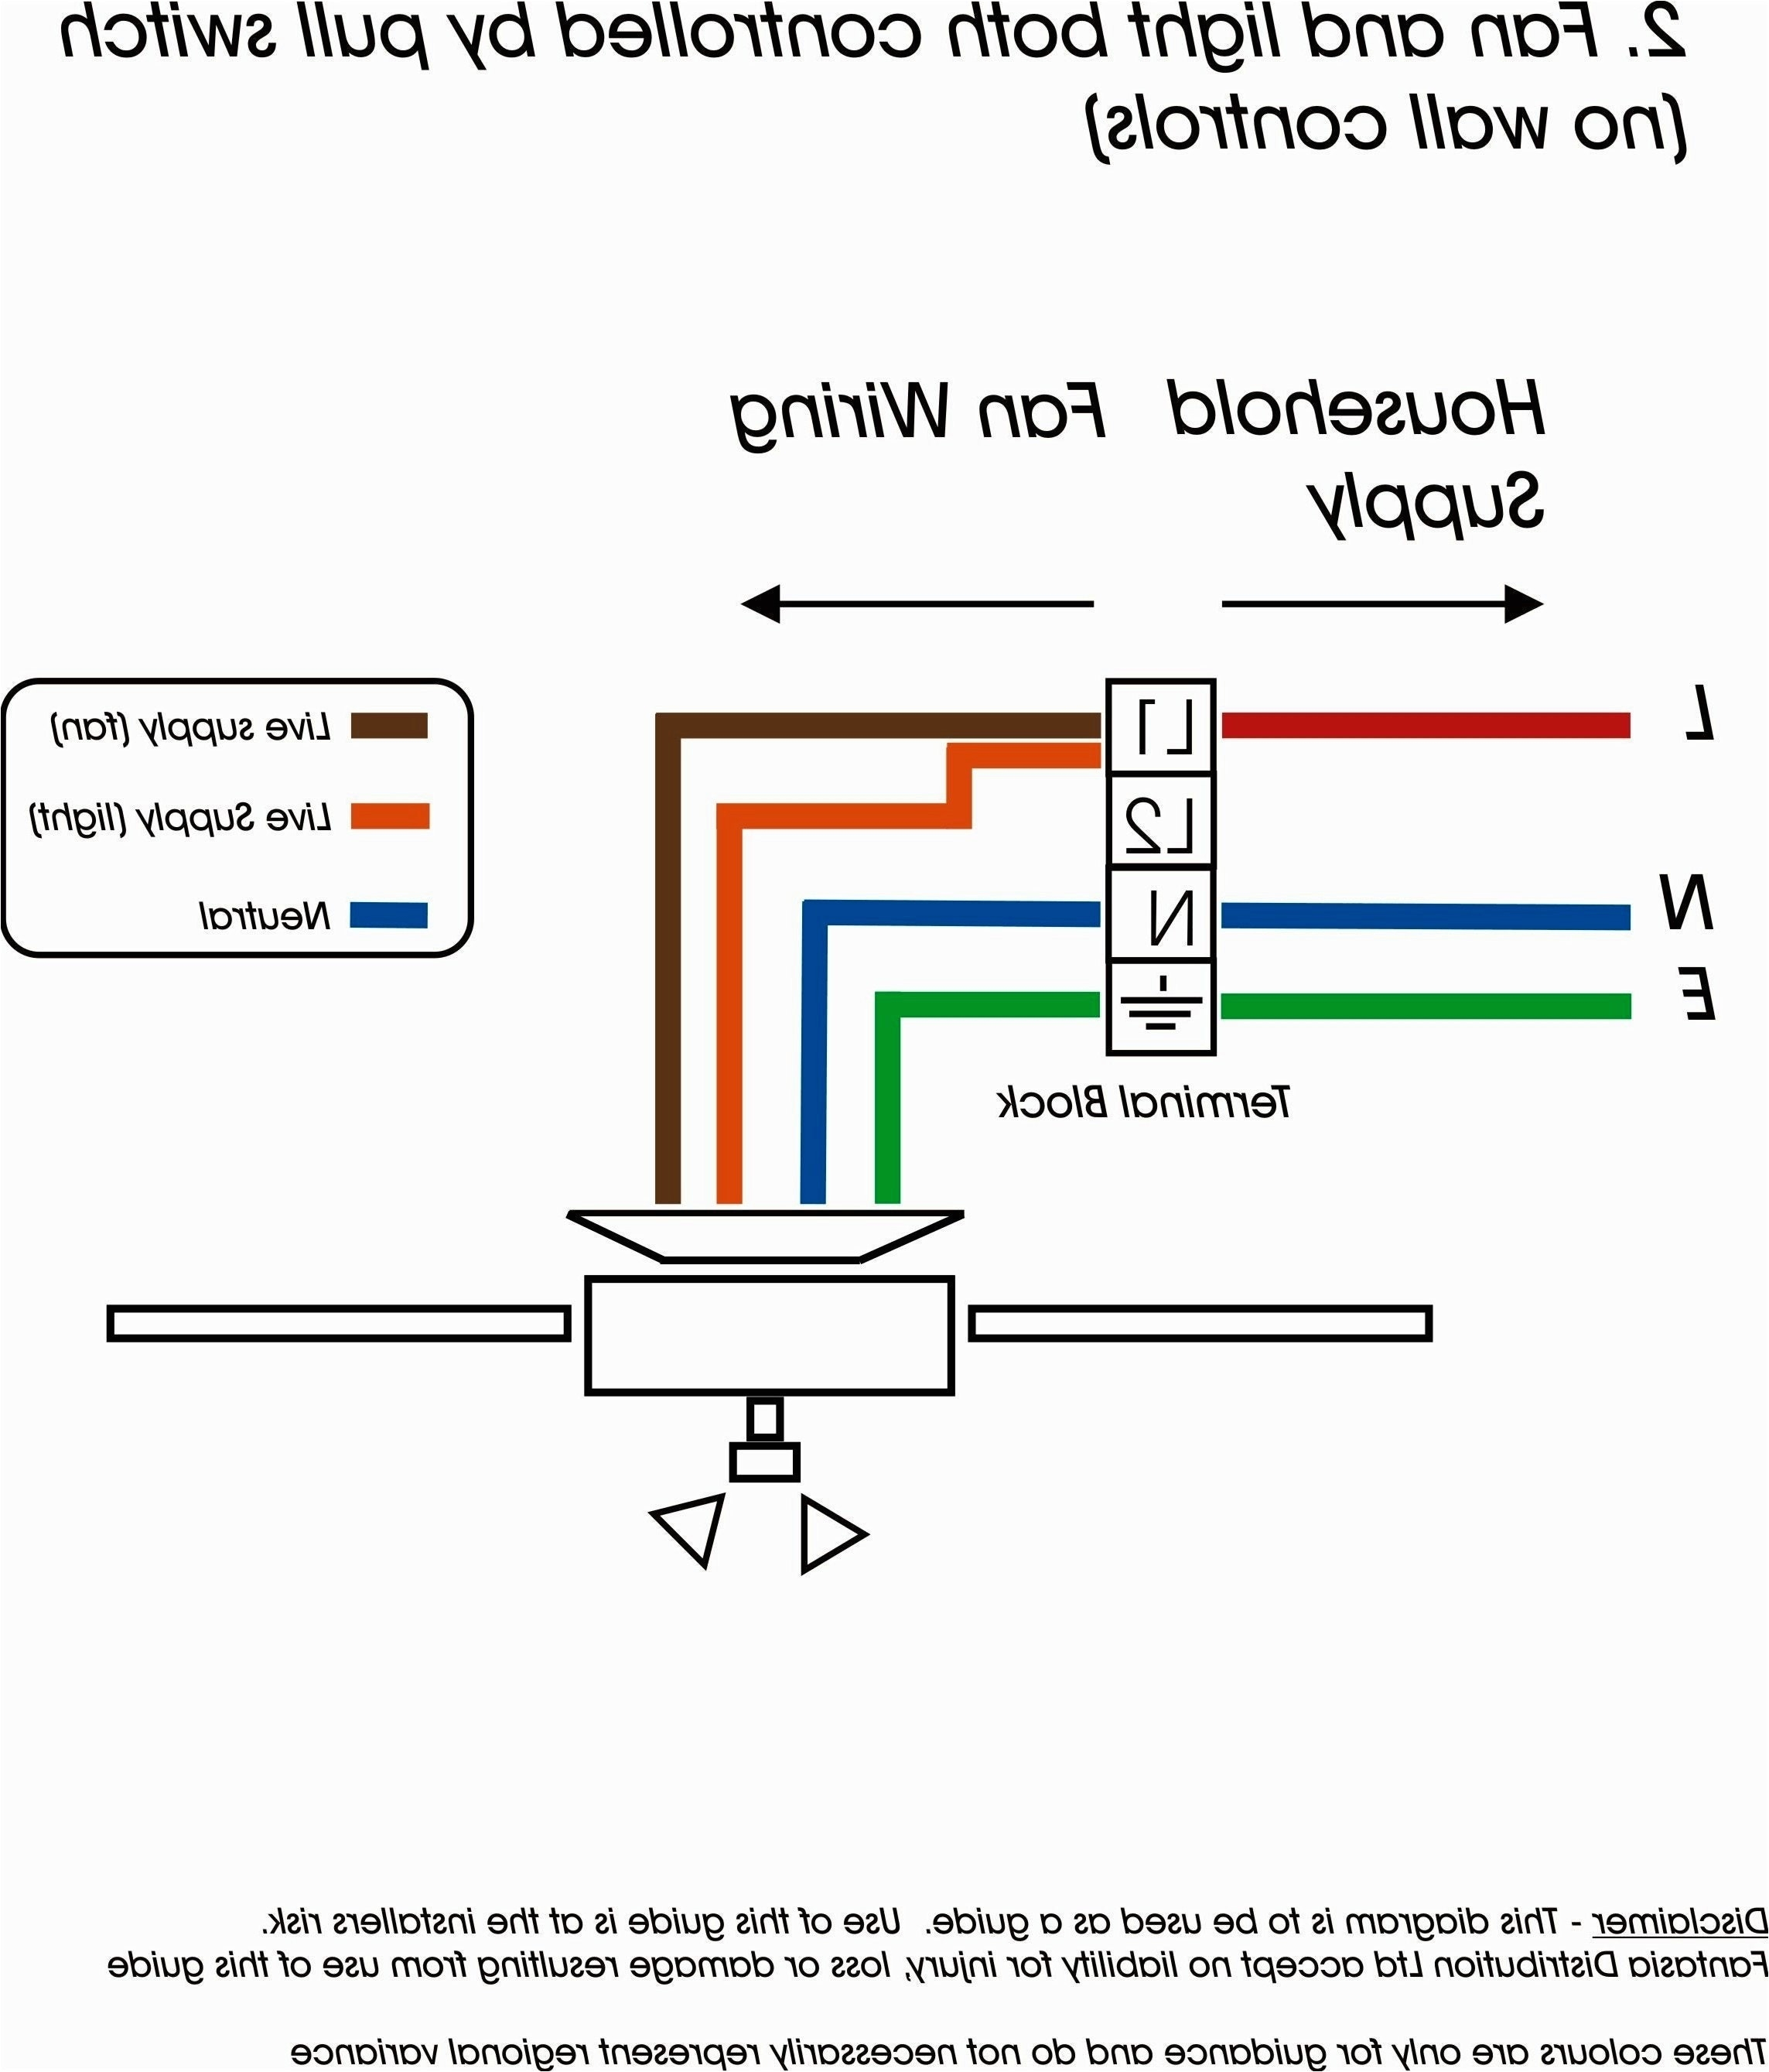 pin dpdt switch circuit diagrams on pinterest pin dpdt switch circuit diagrams on pinterest